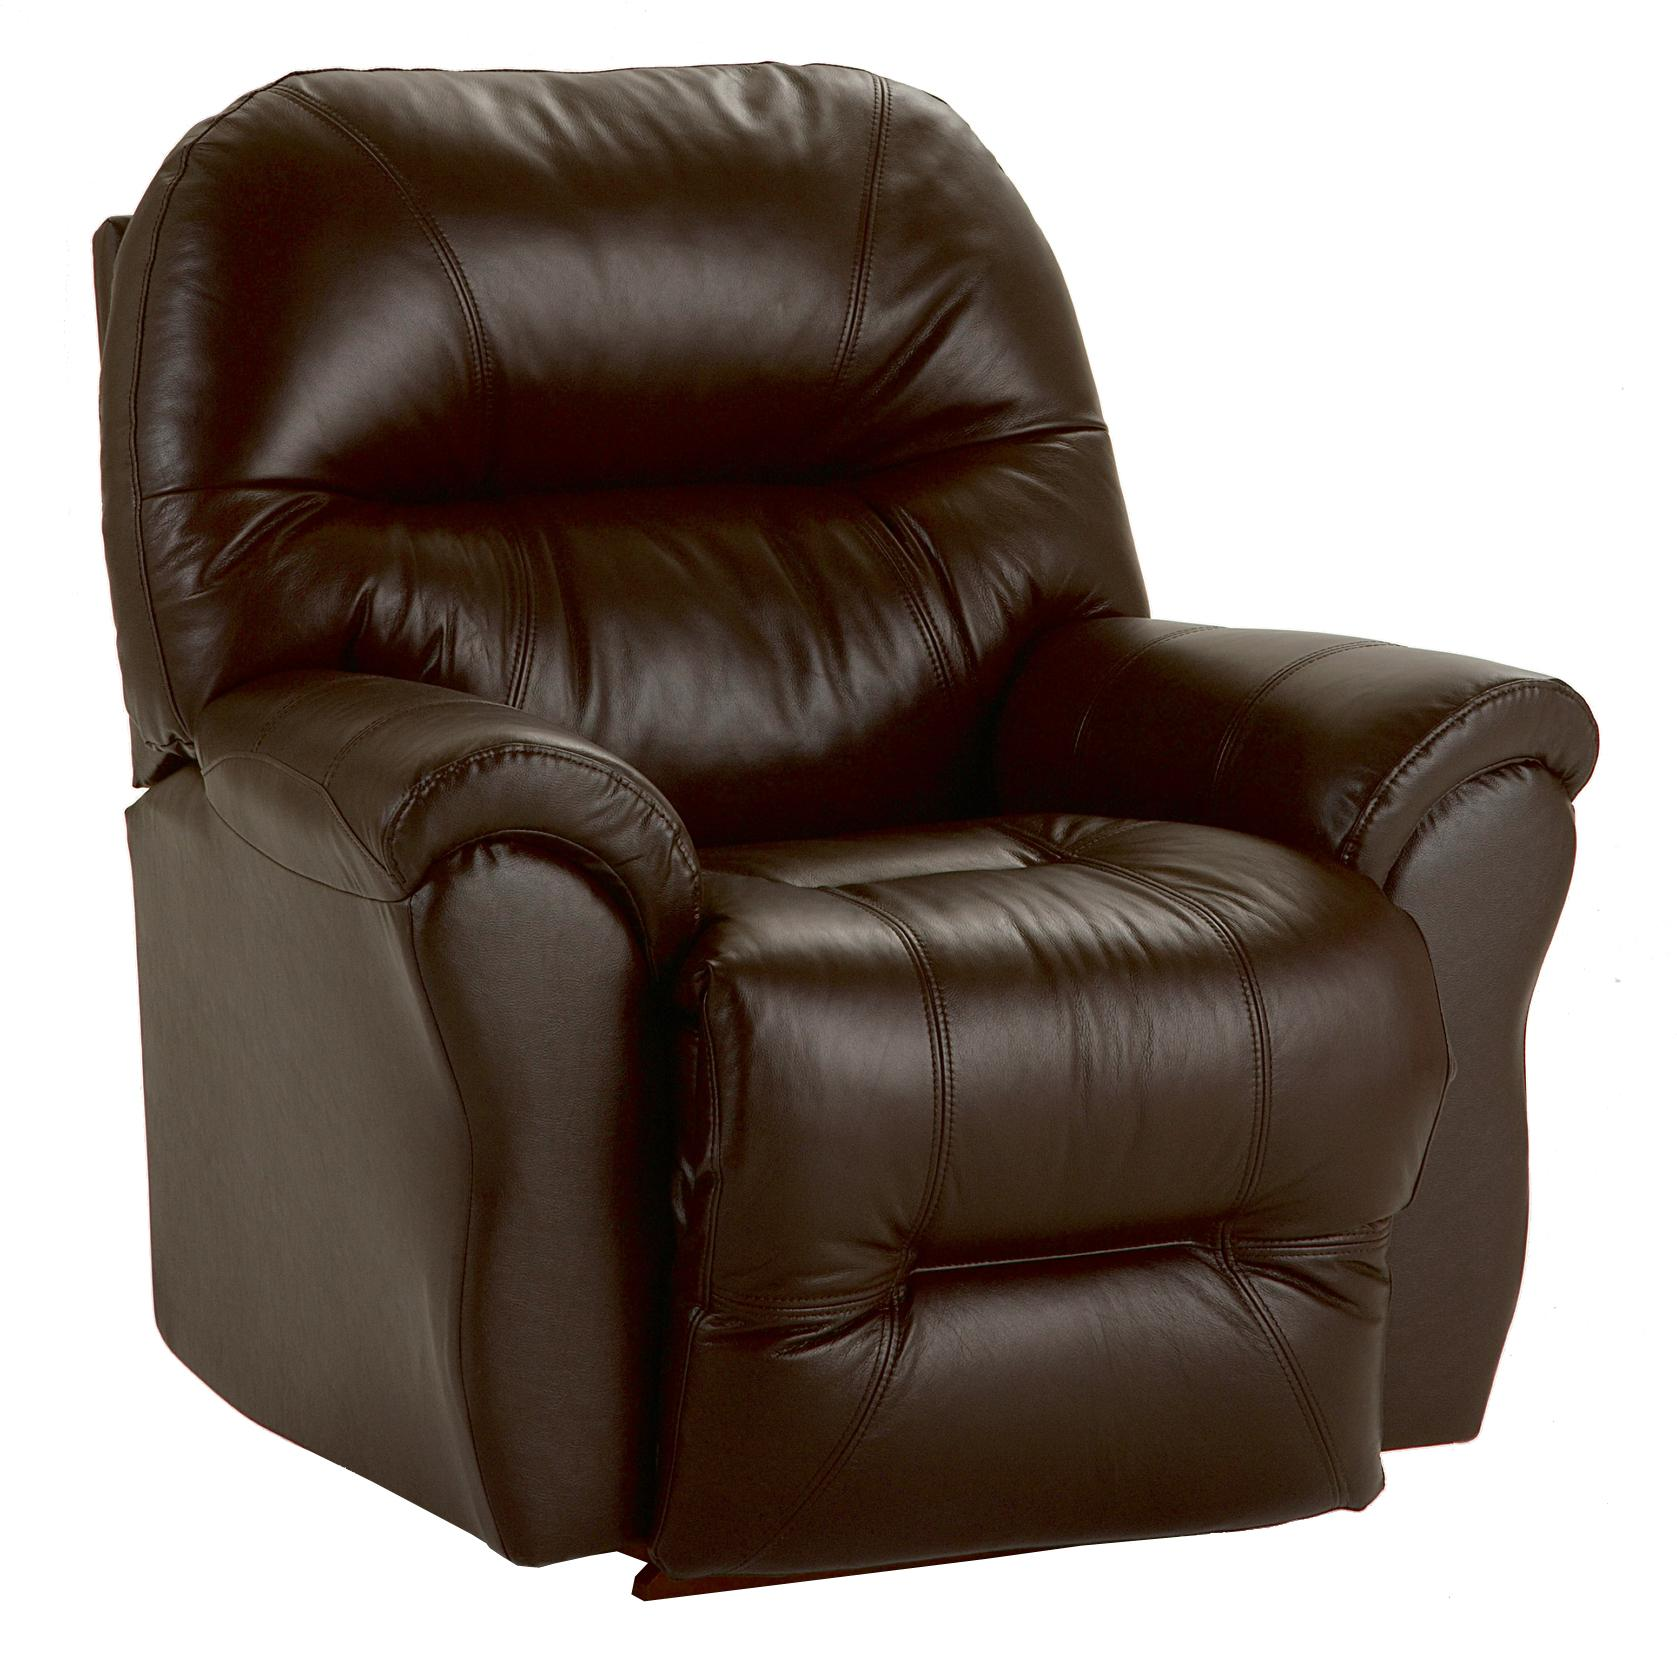 Bodie power lift recliner by best home furnishings wolf for Best furnishings